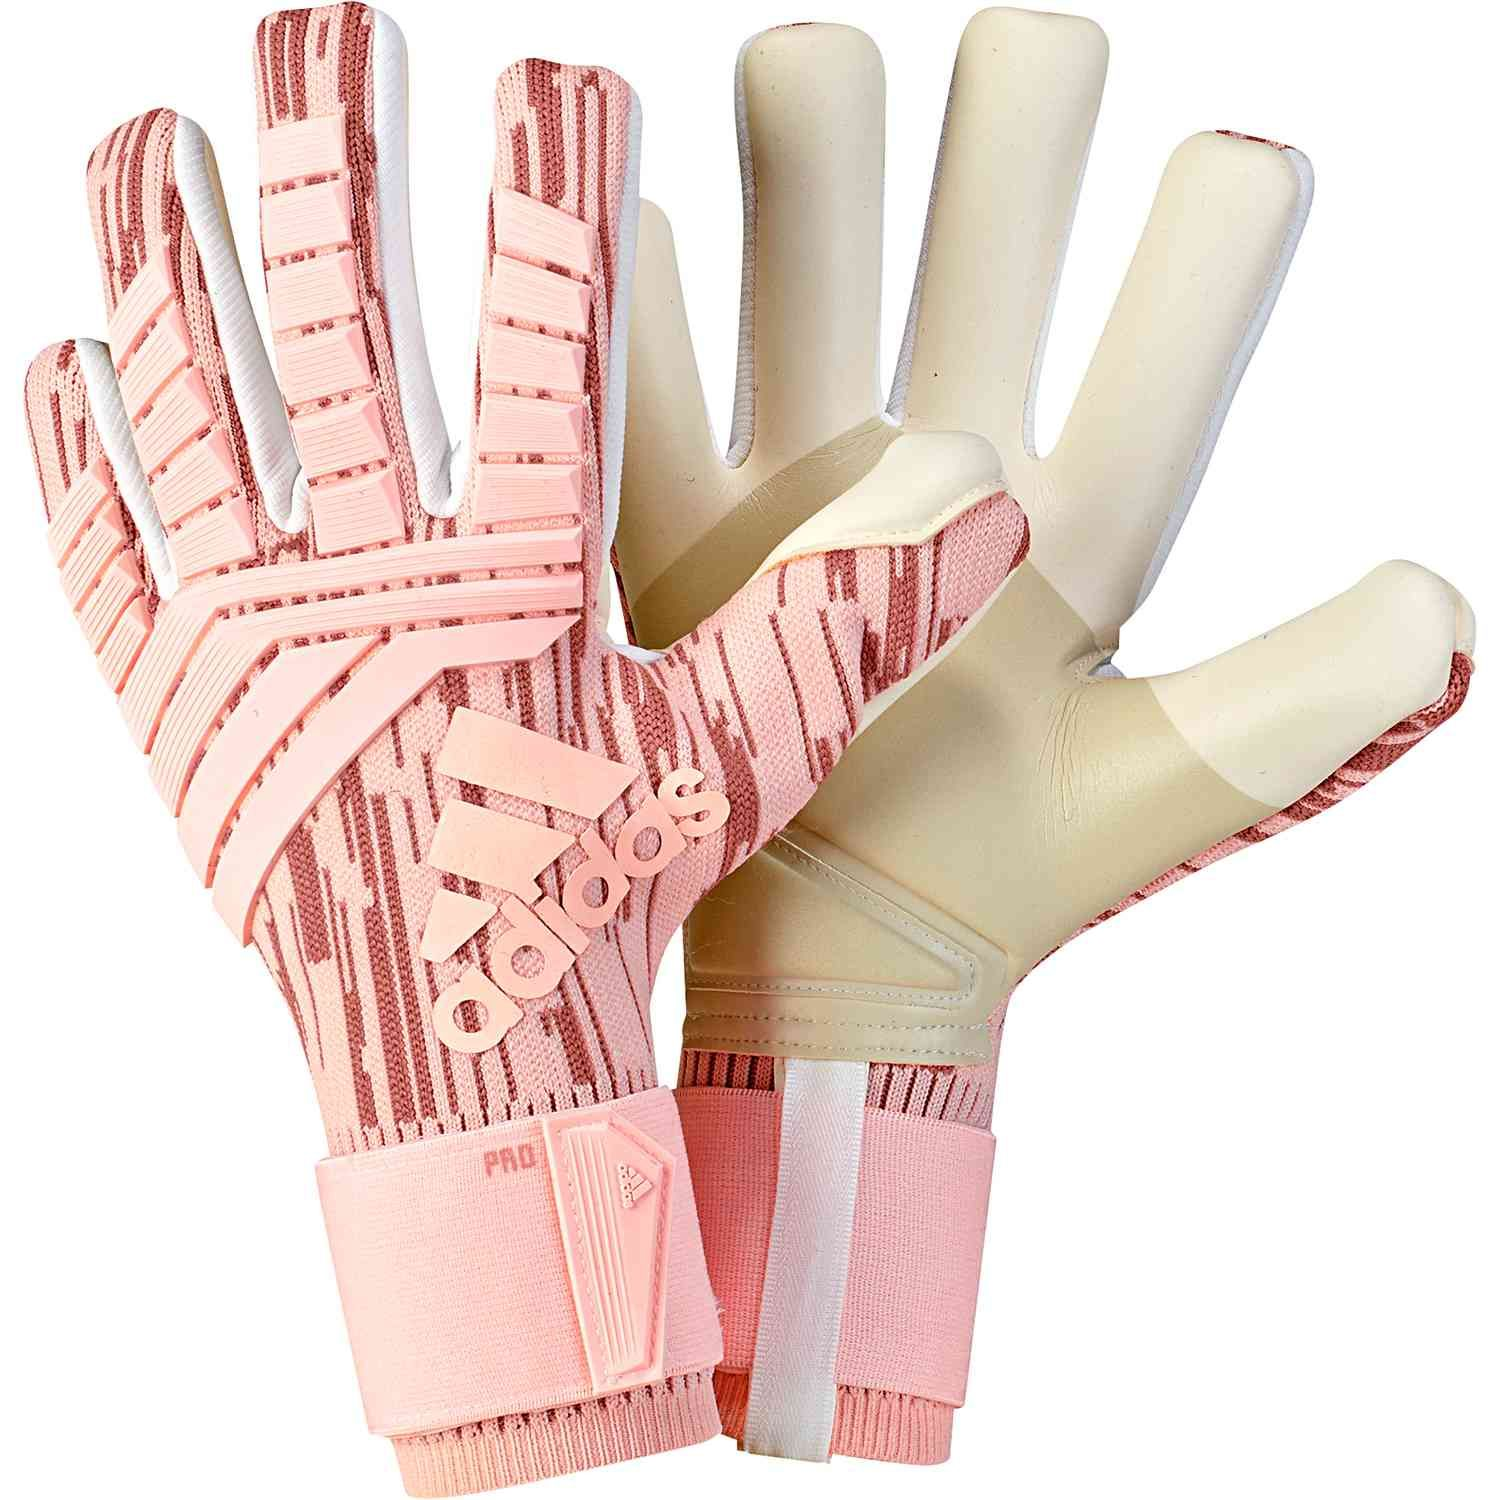 adidas Predator Pro keeper gloves in trace pink. Get these super gloves  from SoccerPro today 15123ad58fba0